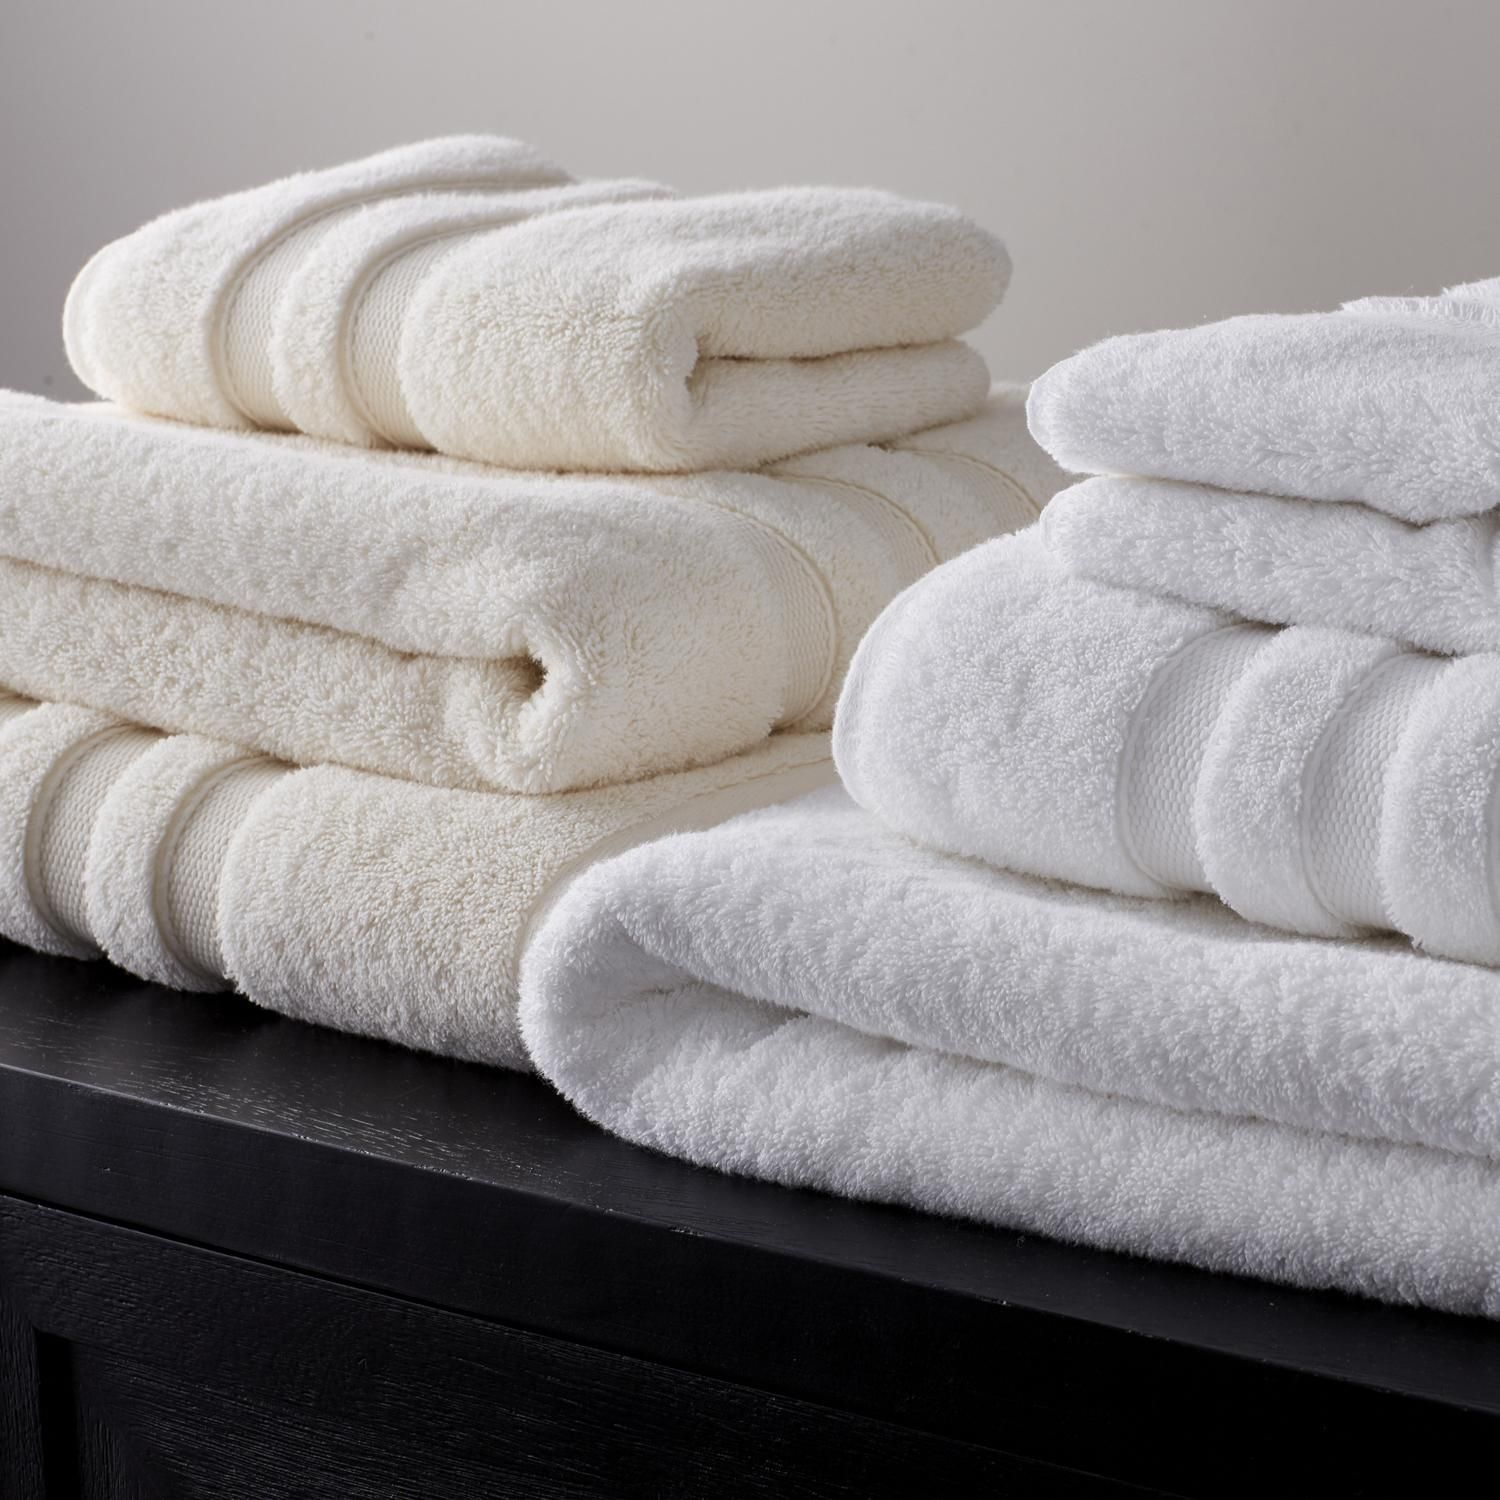 Legends Estate Towel The Company Store In 2020 Bath Towels Towel Washing Clothes